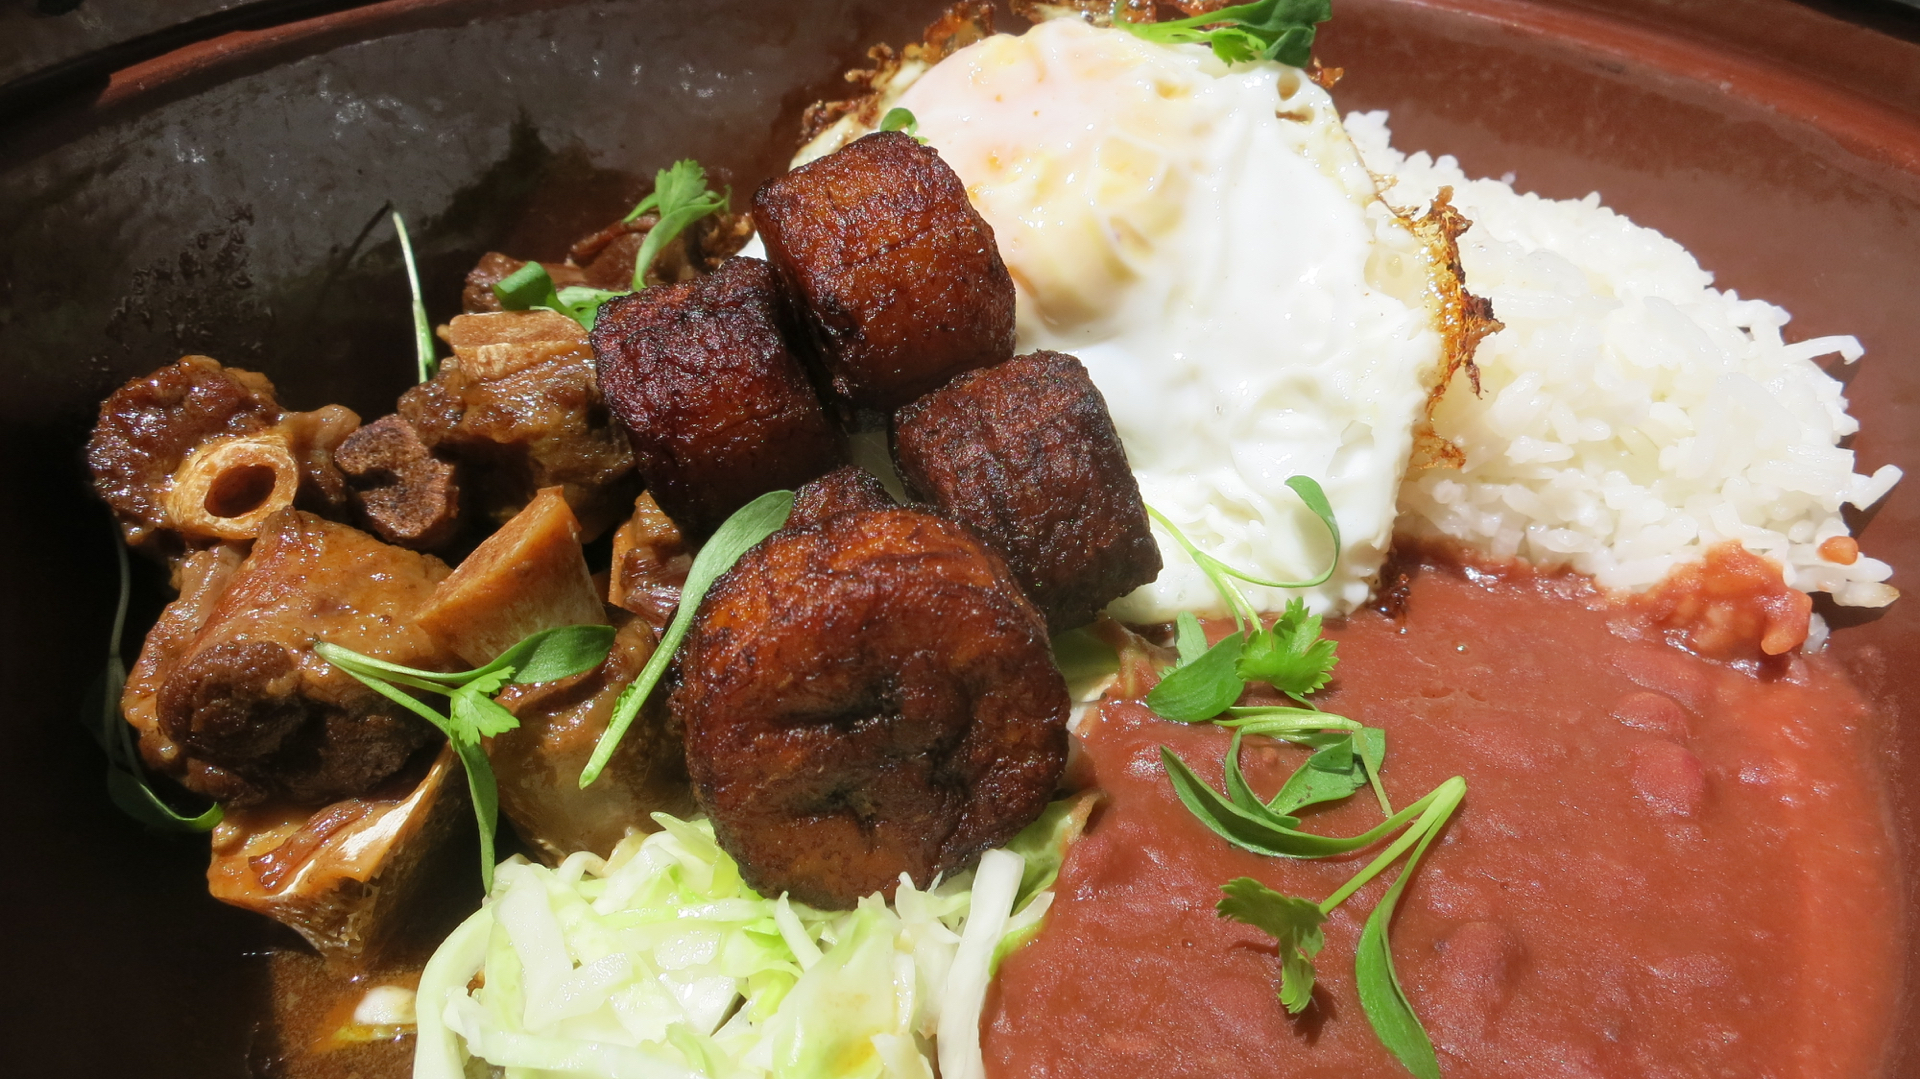 A bowlful of braised black Angus oxtail, stewed beans, steamed rice, coleslaw with maduros (plantains) and a fried egg makes for a hearty lunch from alaMar.